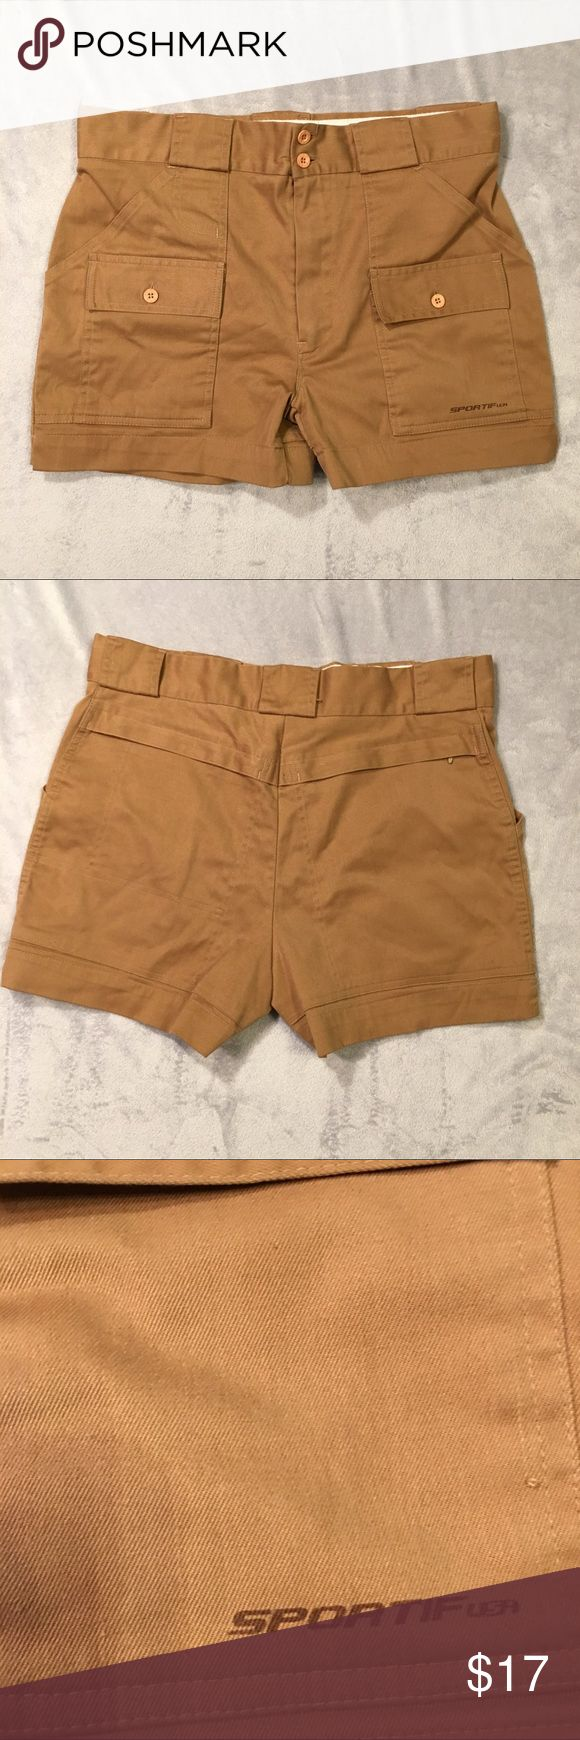 """Sportif USA espa plus shorts athletic fishing 34 Good overall condition. Minor staining on interior waistband. See pictures. Measurements are approximate with the garment laid flat.  Waist 16.5"""" Inseam 3.5"""" Rise 11"""" Sportif USA Shorts"""